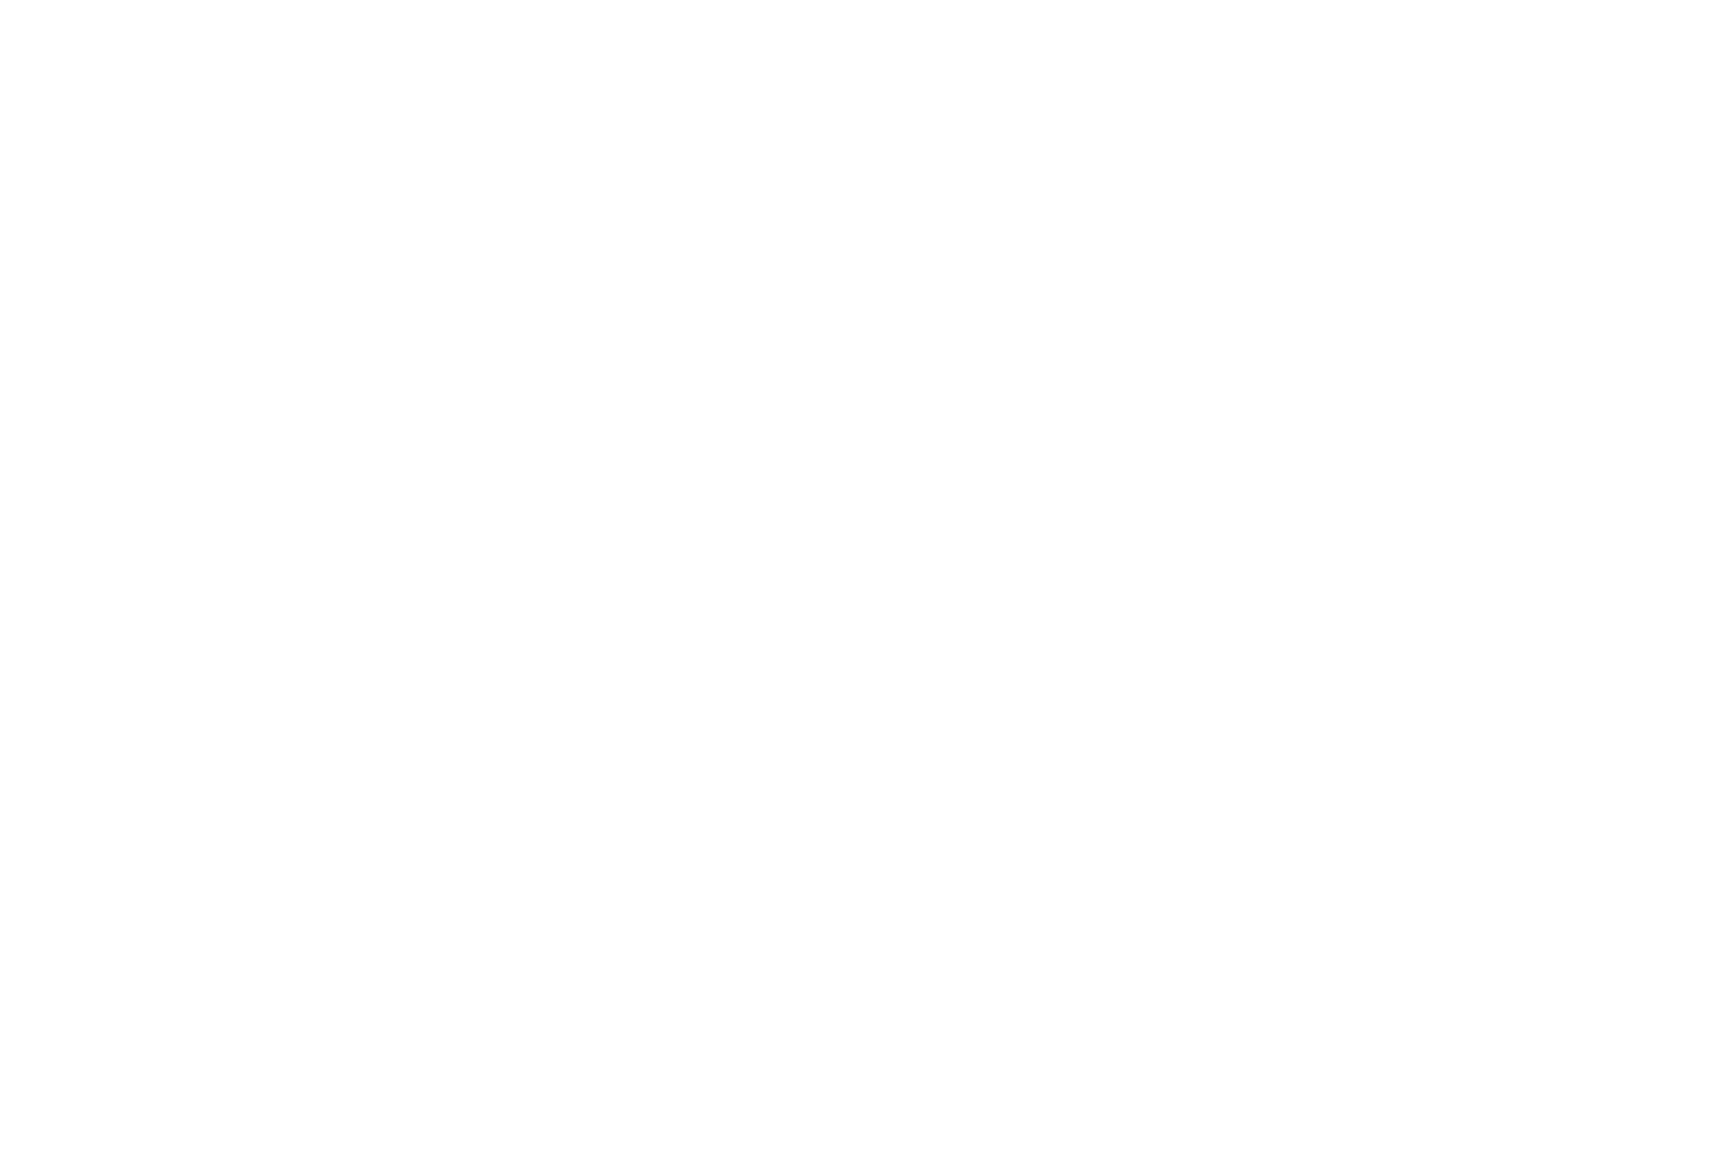 WINNER - BEST FILM - OFFICIAL LATINO FILM FESTIVAL - 2018.png